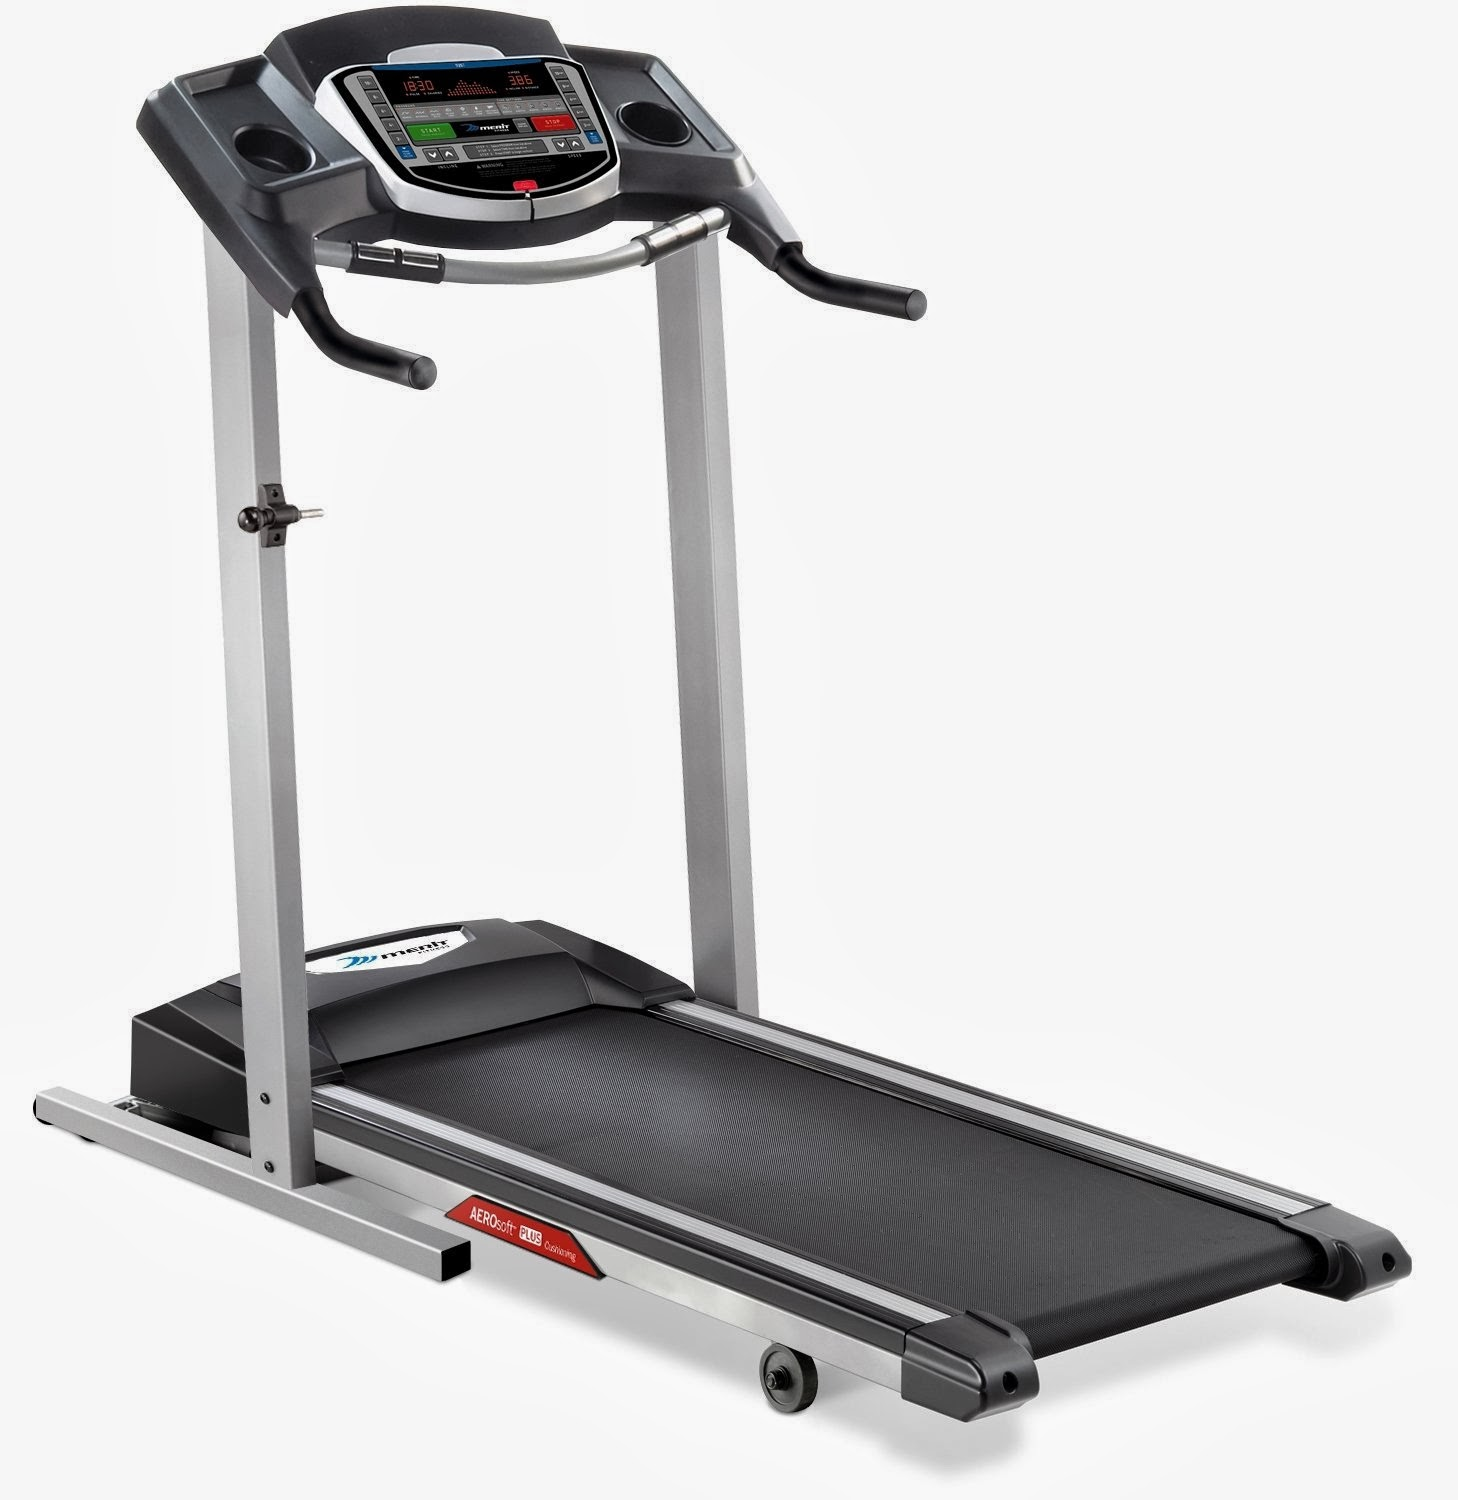 Merit Fitness 725T Treadmill versus Merit Fitness 715T Treadmill, compare features and differences, buy at low price